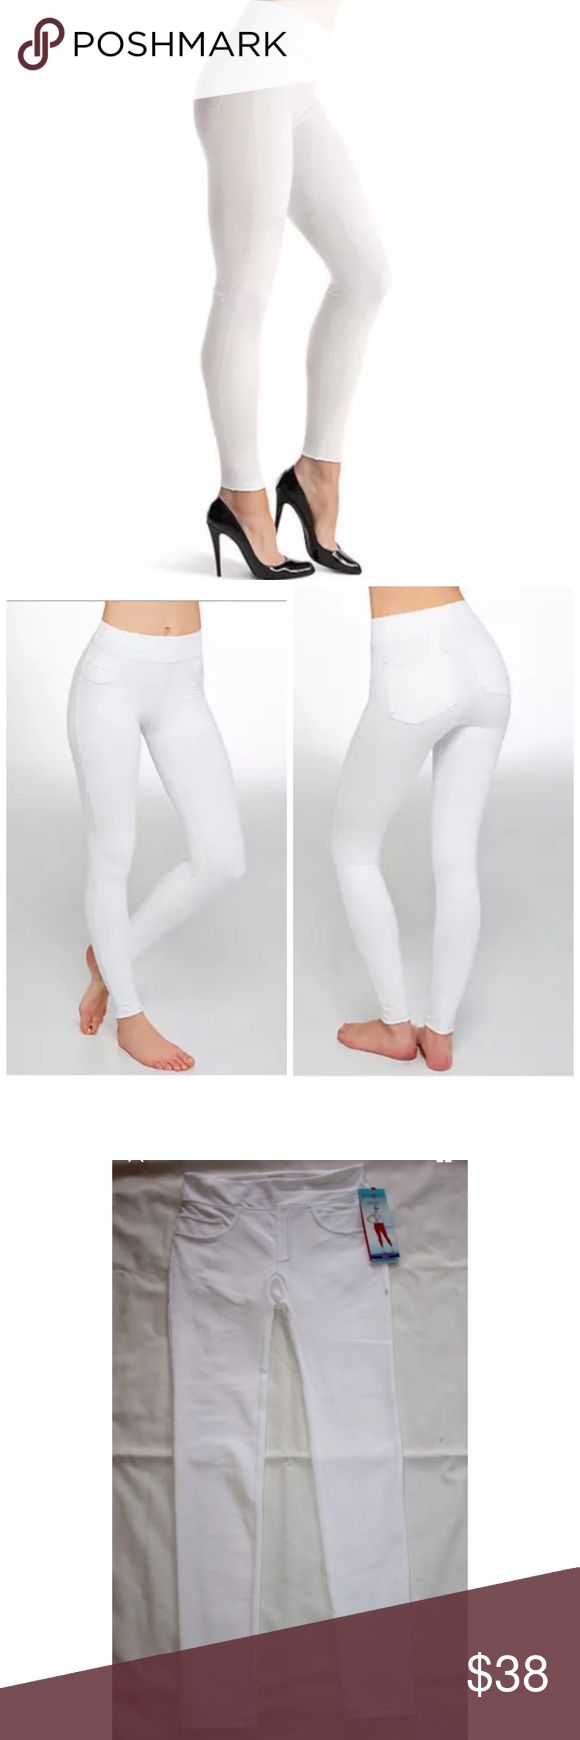 SPANX ASSETS STRUCTURED LEGGINGS JEGGINGS ***PLEASE NOTE***because of colors there may be very faint minor dirt/dust marks from store handling that will wash right out! These jeggings combine the style of leggings and the power of shapewear. With a slimming panel built-in to the waistband, you'll feel amazing wearing these women's jeggings. Built-in invisible shaping 2-pocket & 2-faux pocket Faux zipper fly & pockets with contrast stitching Elastic waistband Body: cotton, polyester, spandex…